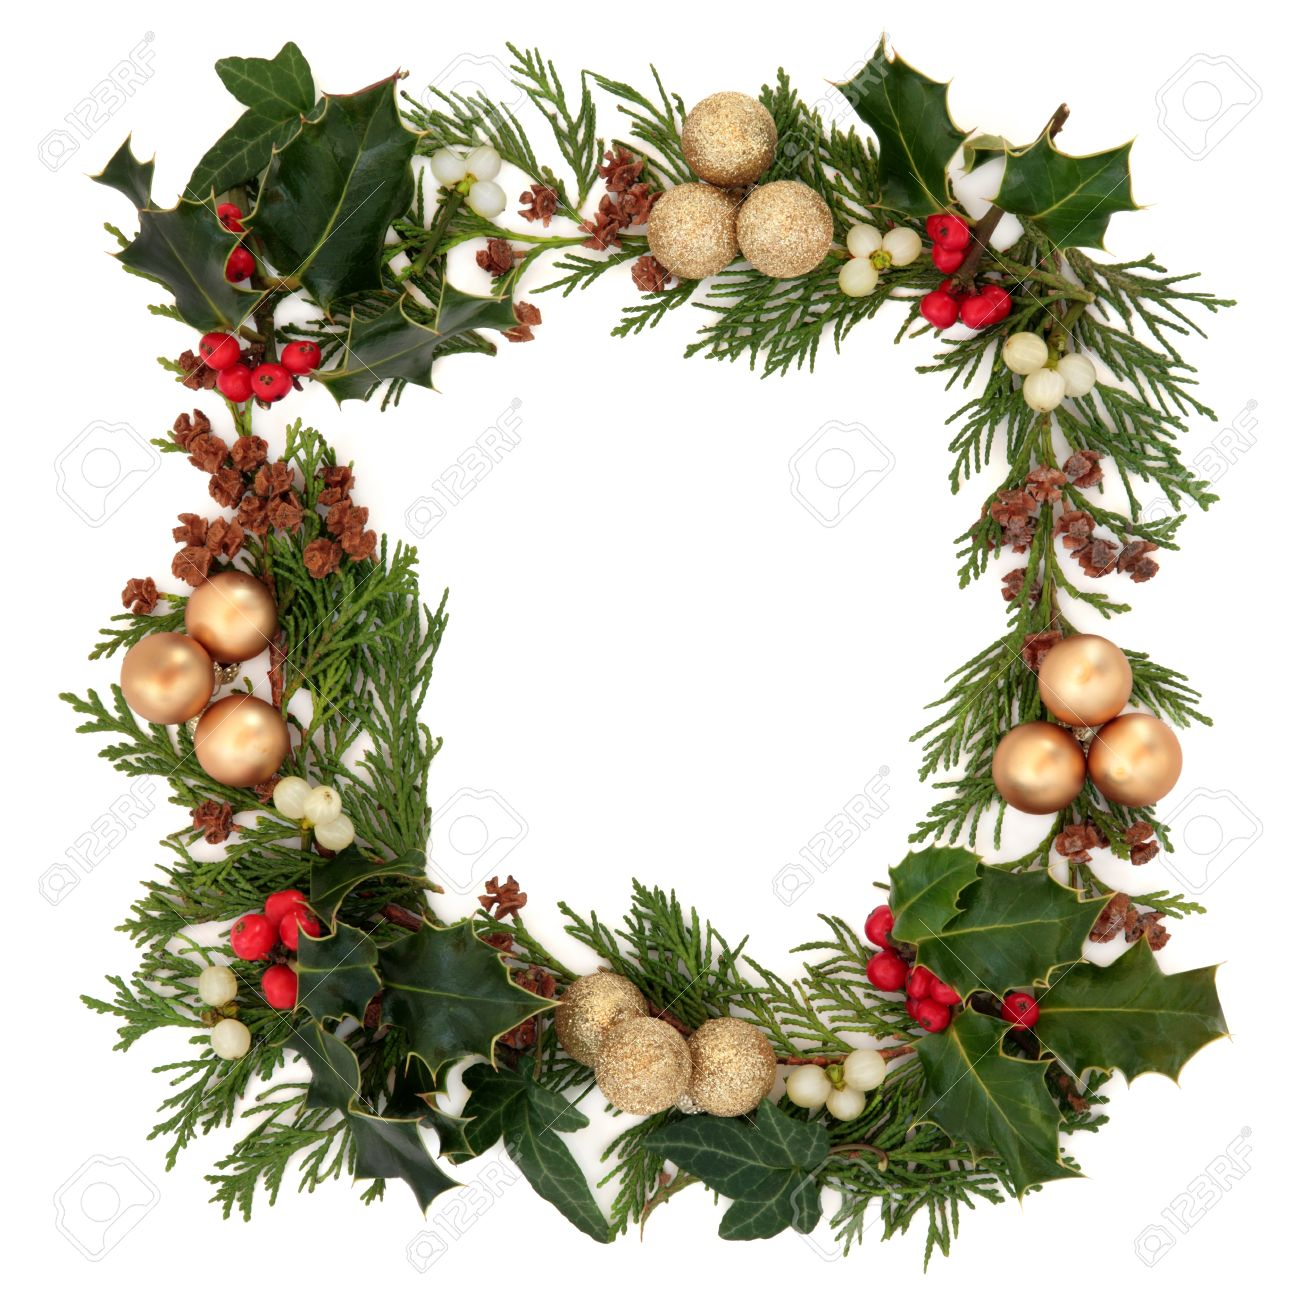 christmas decorative border of holly mistletoe ivy cedar and gold baubles over white